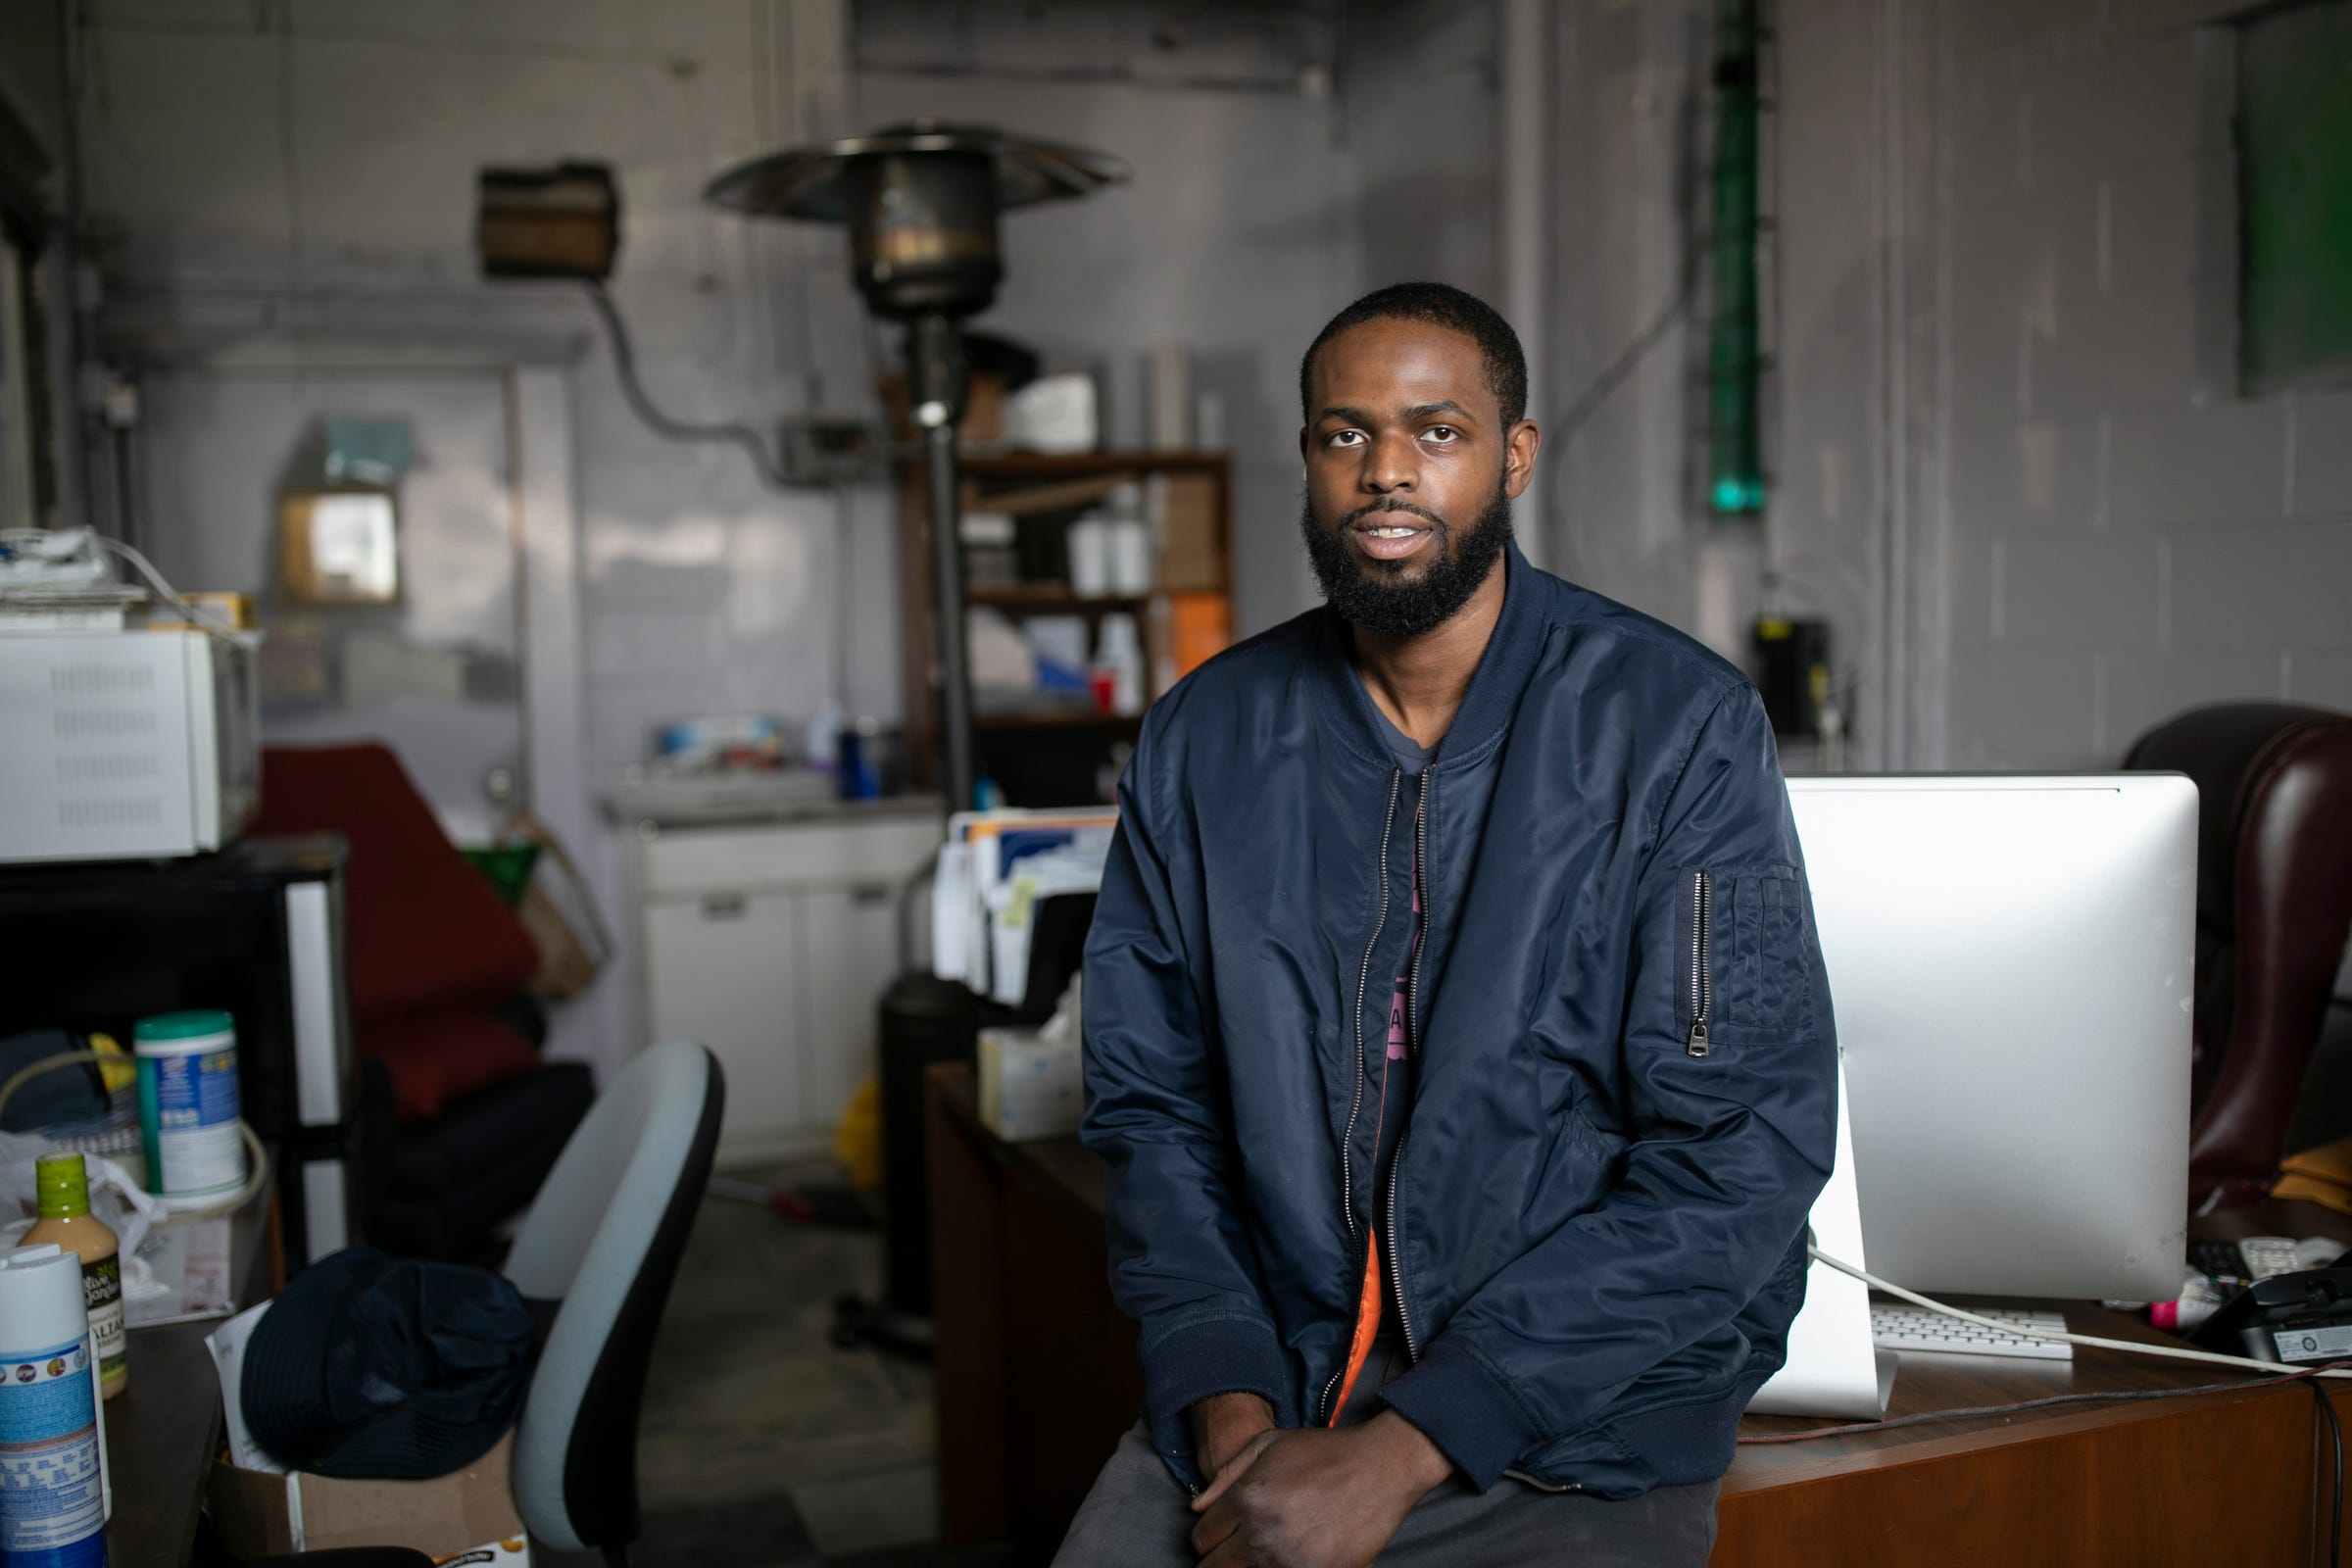 Jerrell Simmons, 27, of Detroit is a detail specialist and a carpet cleaner. Simmons subcontracts for Detroit Maid. Business has become uncertain for Simmons during the Coronavirus threat. Simmons poses for a portrait at his Detroit warehouse Wednesday, March, 25, 2020.